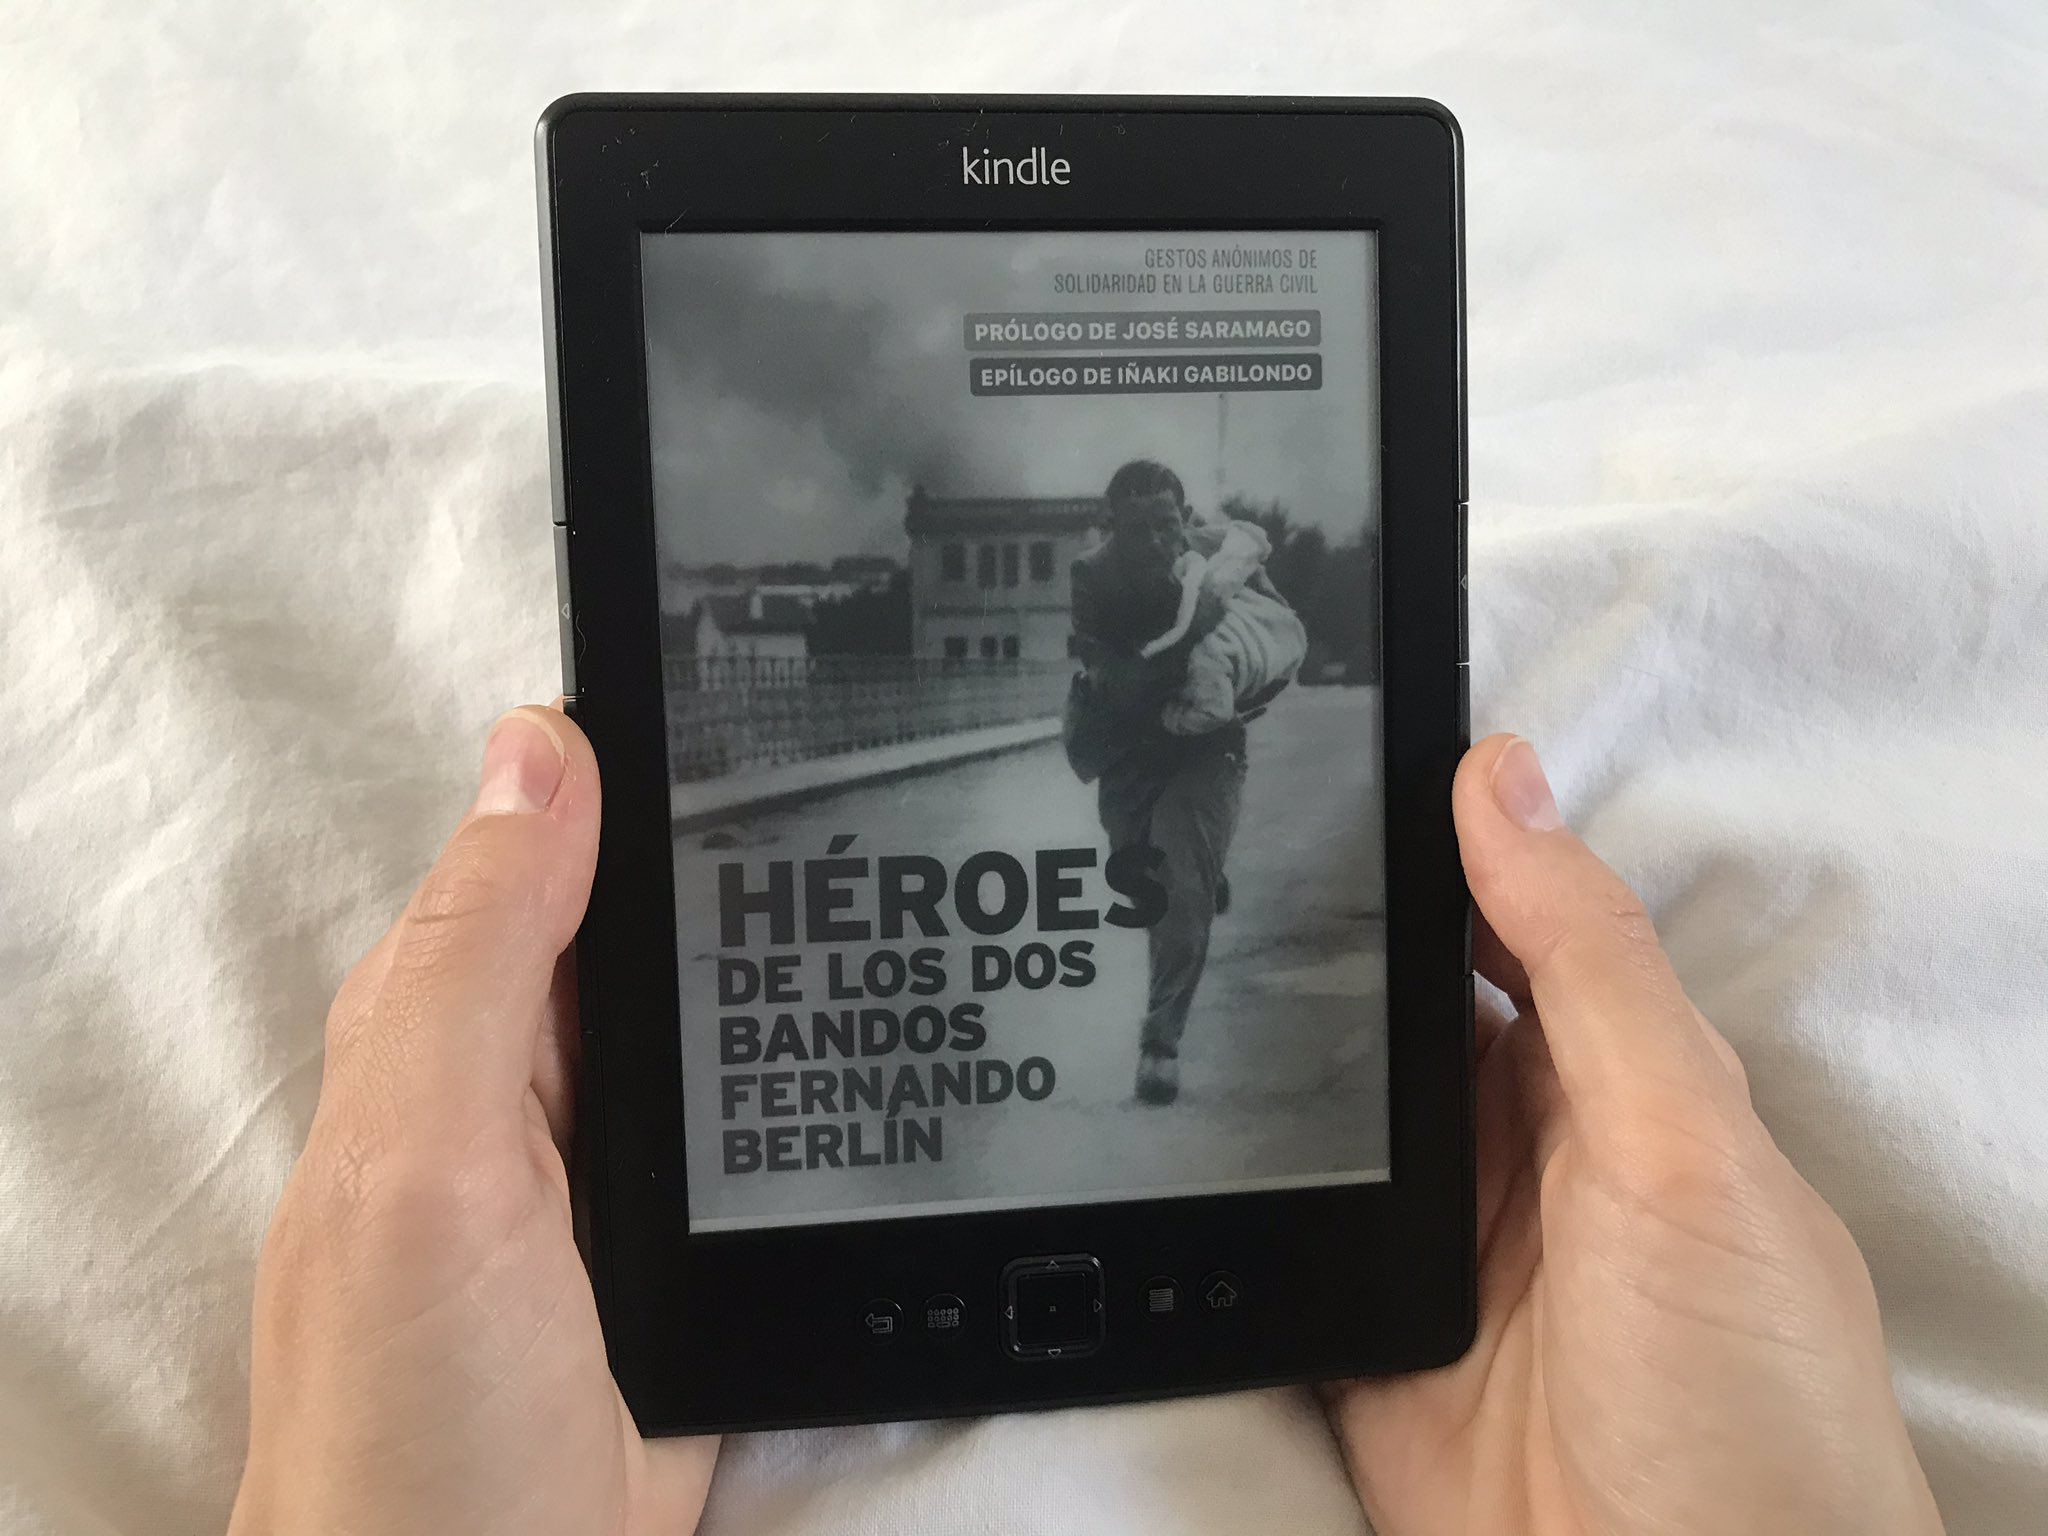 Heroes-kindle-horizontal